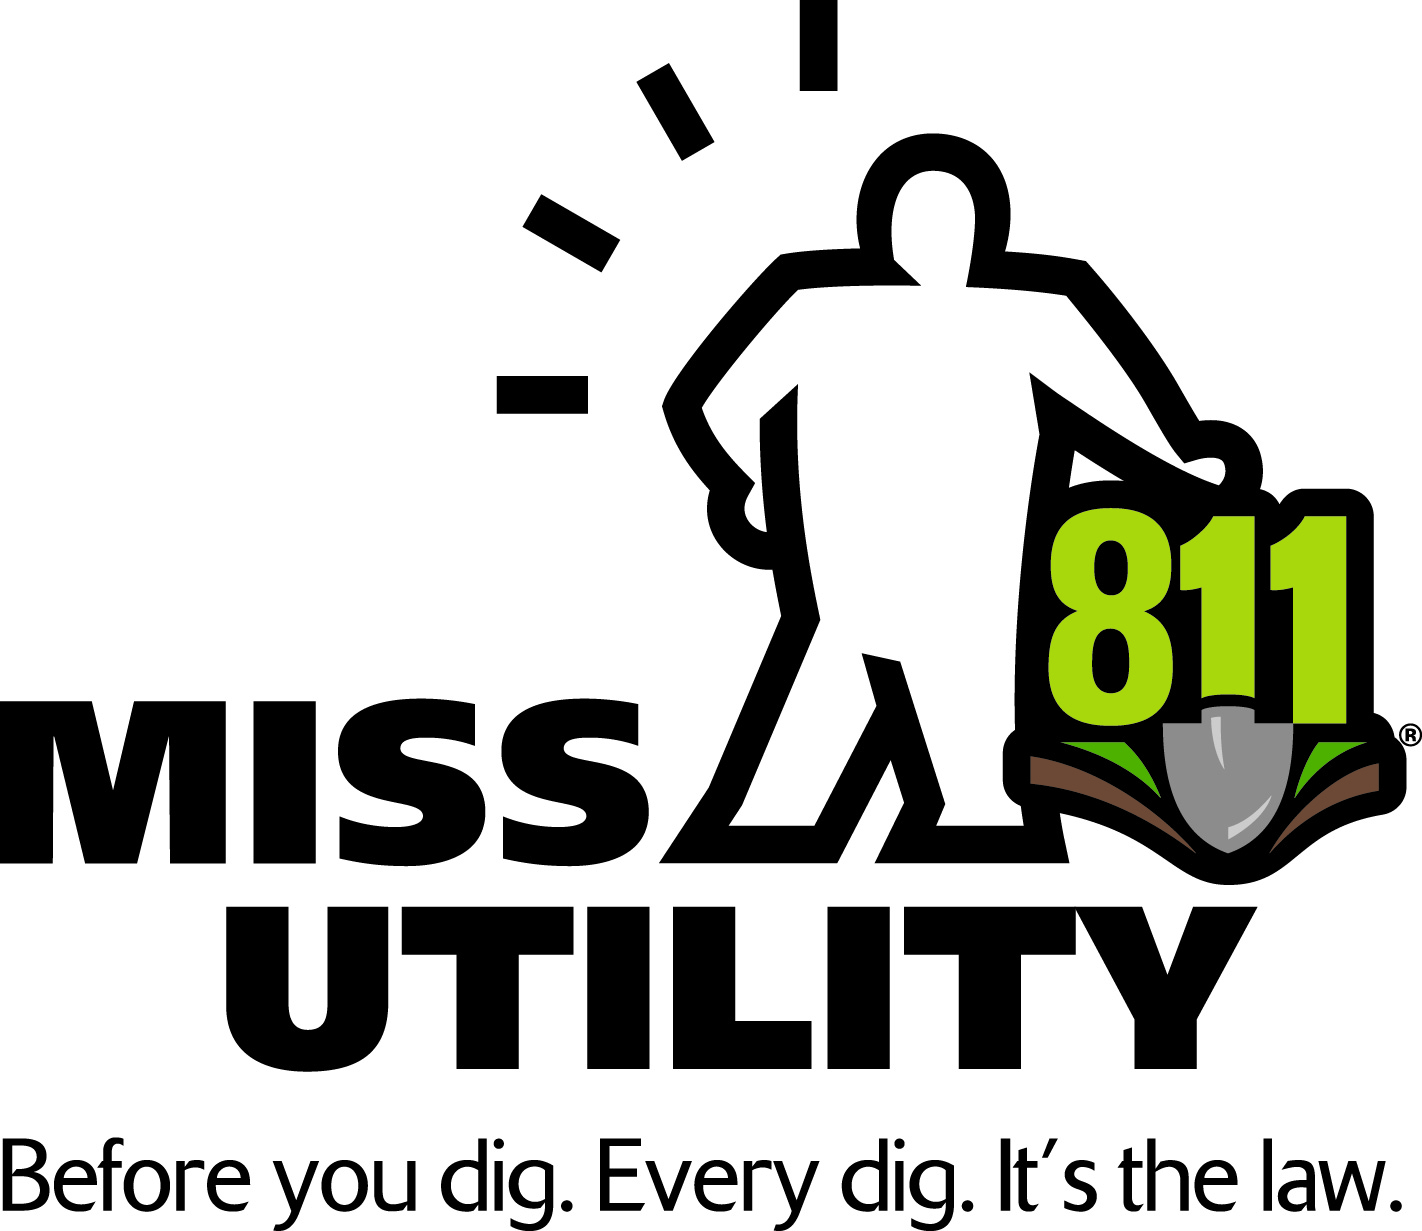 Call 811 Miss utility is your partner when it comes to safe digging! call 811